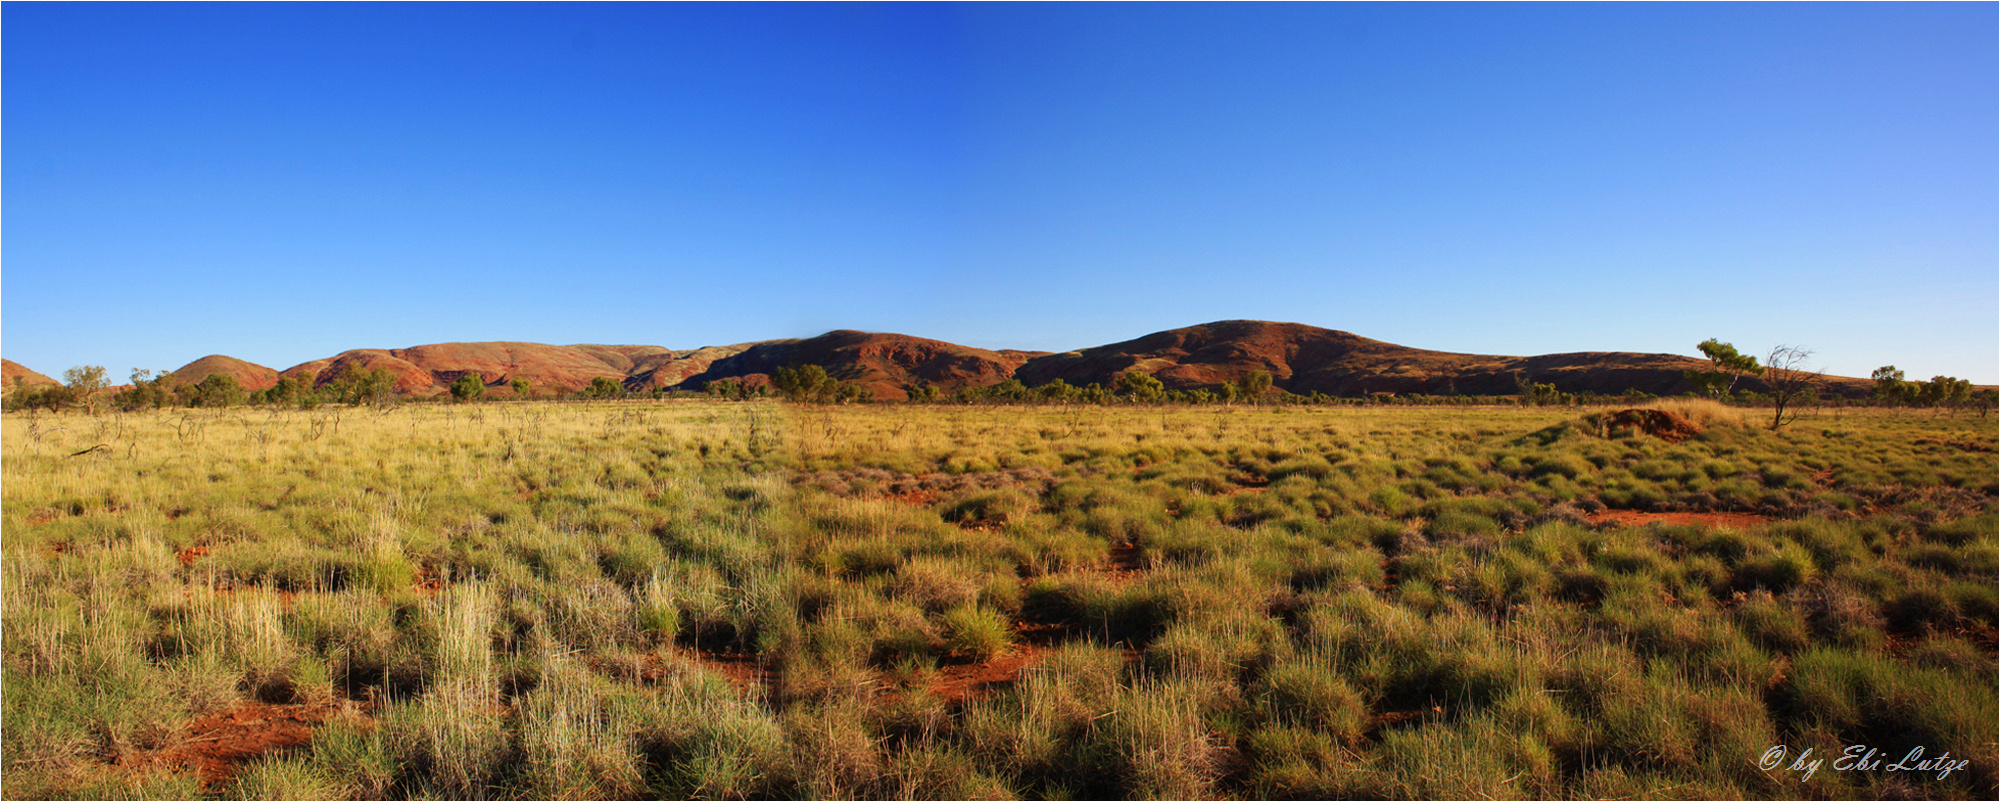 ** Spinifex and the Streckfuss Hills **